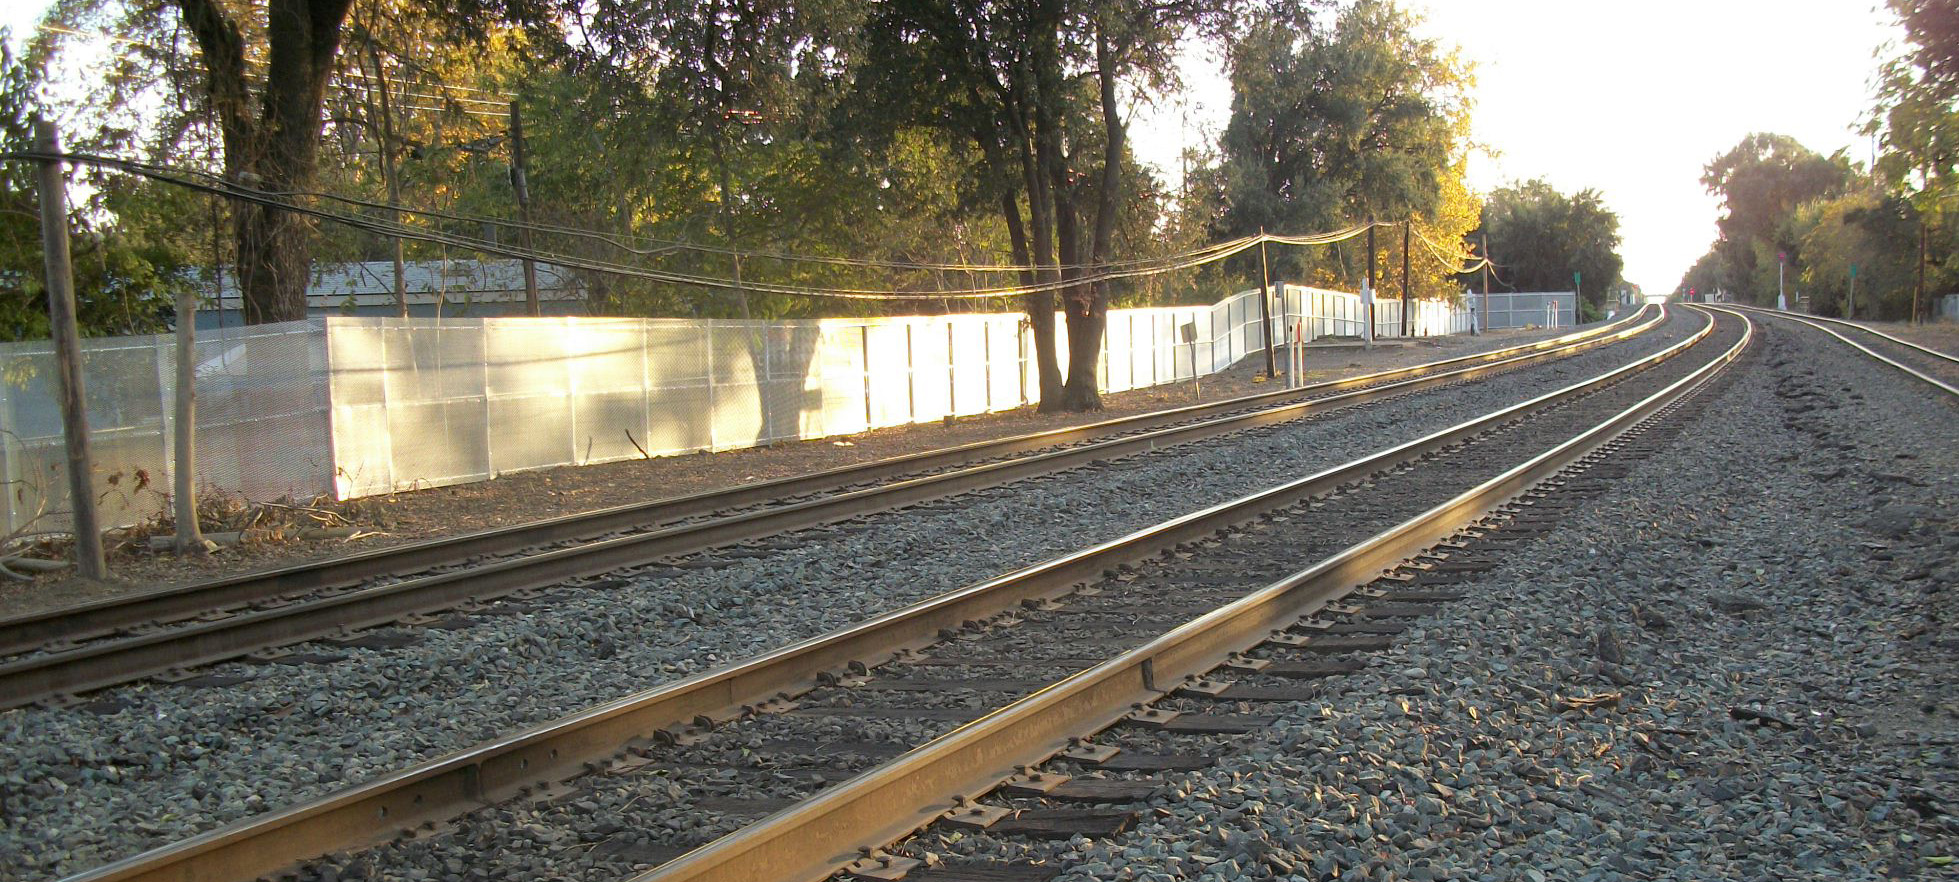 Rail Safety a Priority at the Capitol Corridor